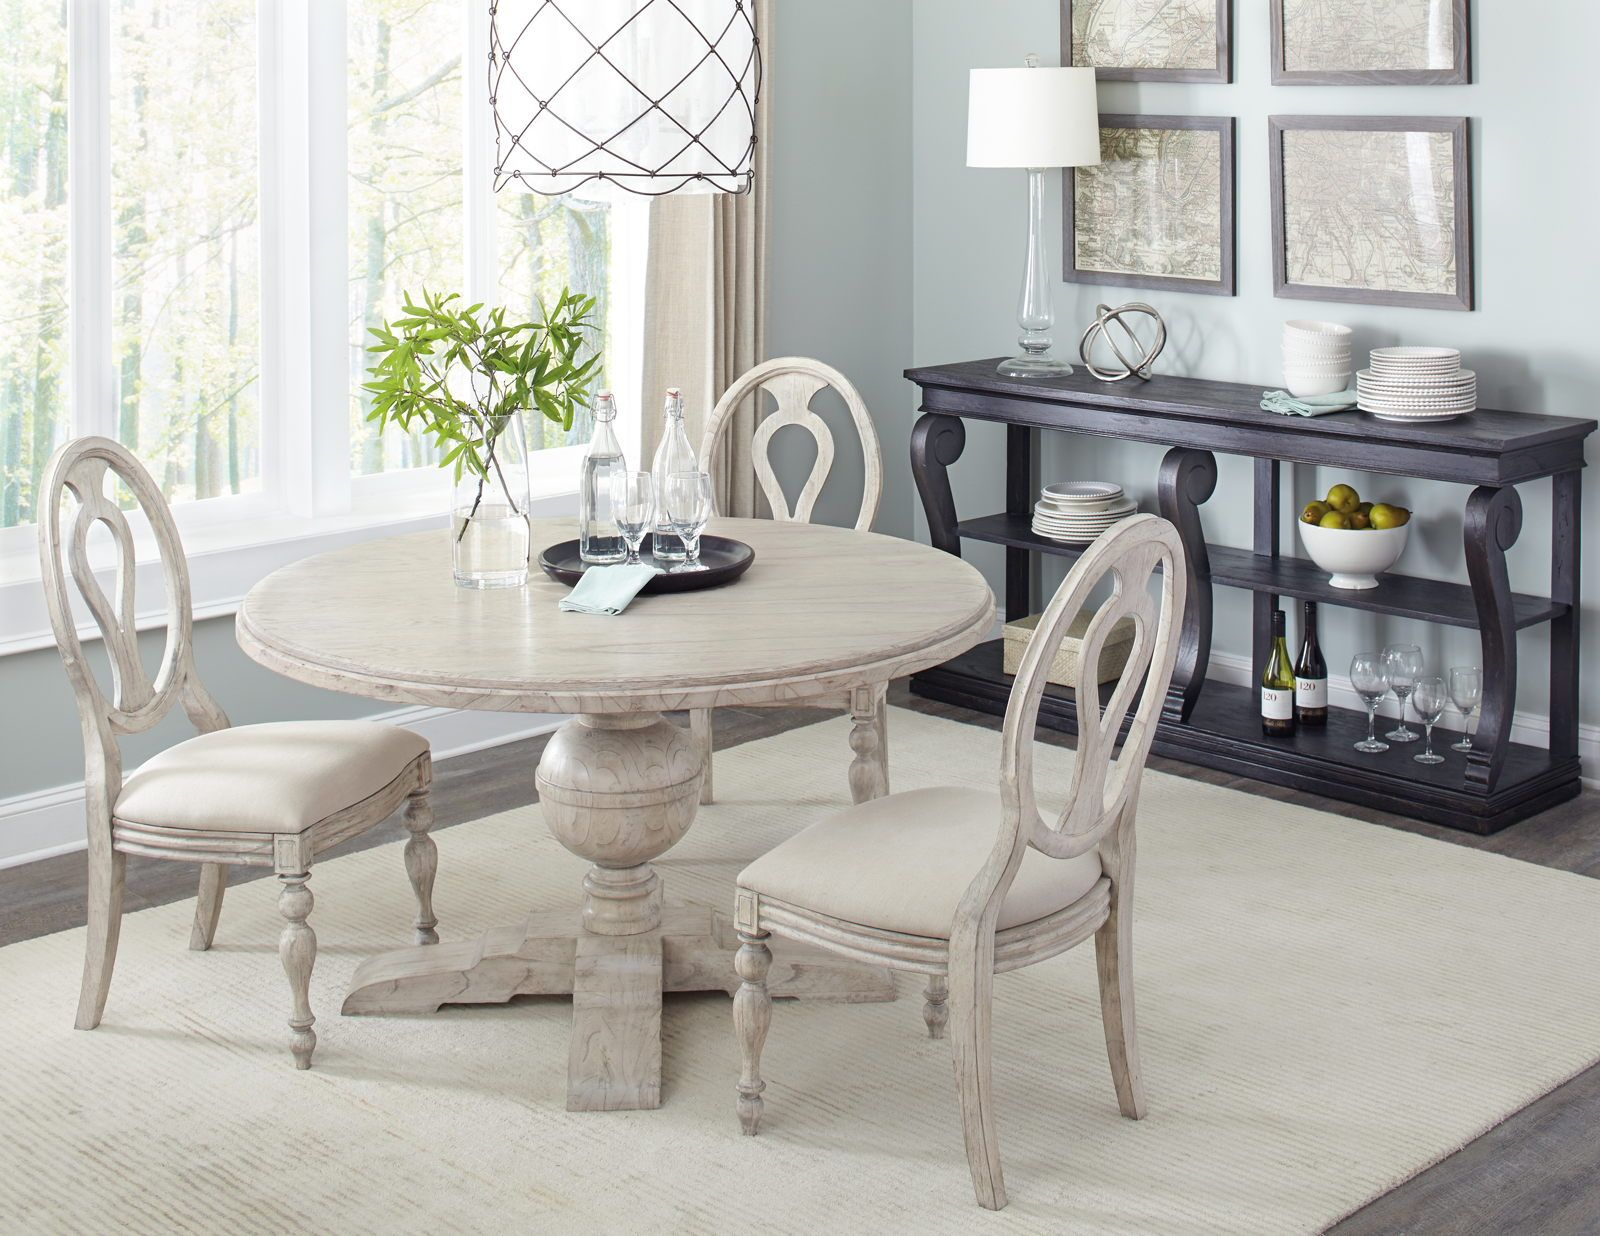 Hekman Homestead Round Dining Set In Linen By Rooms Outlet